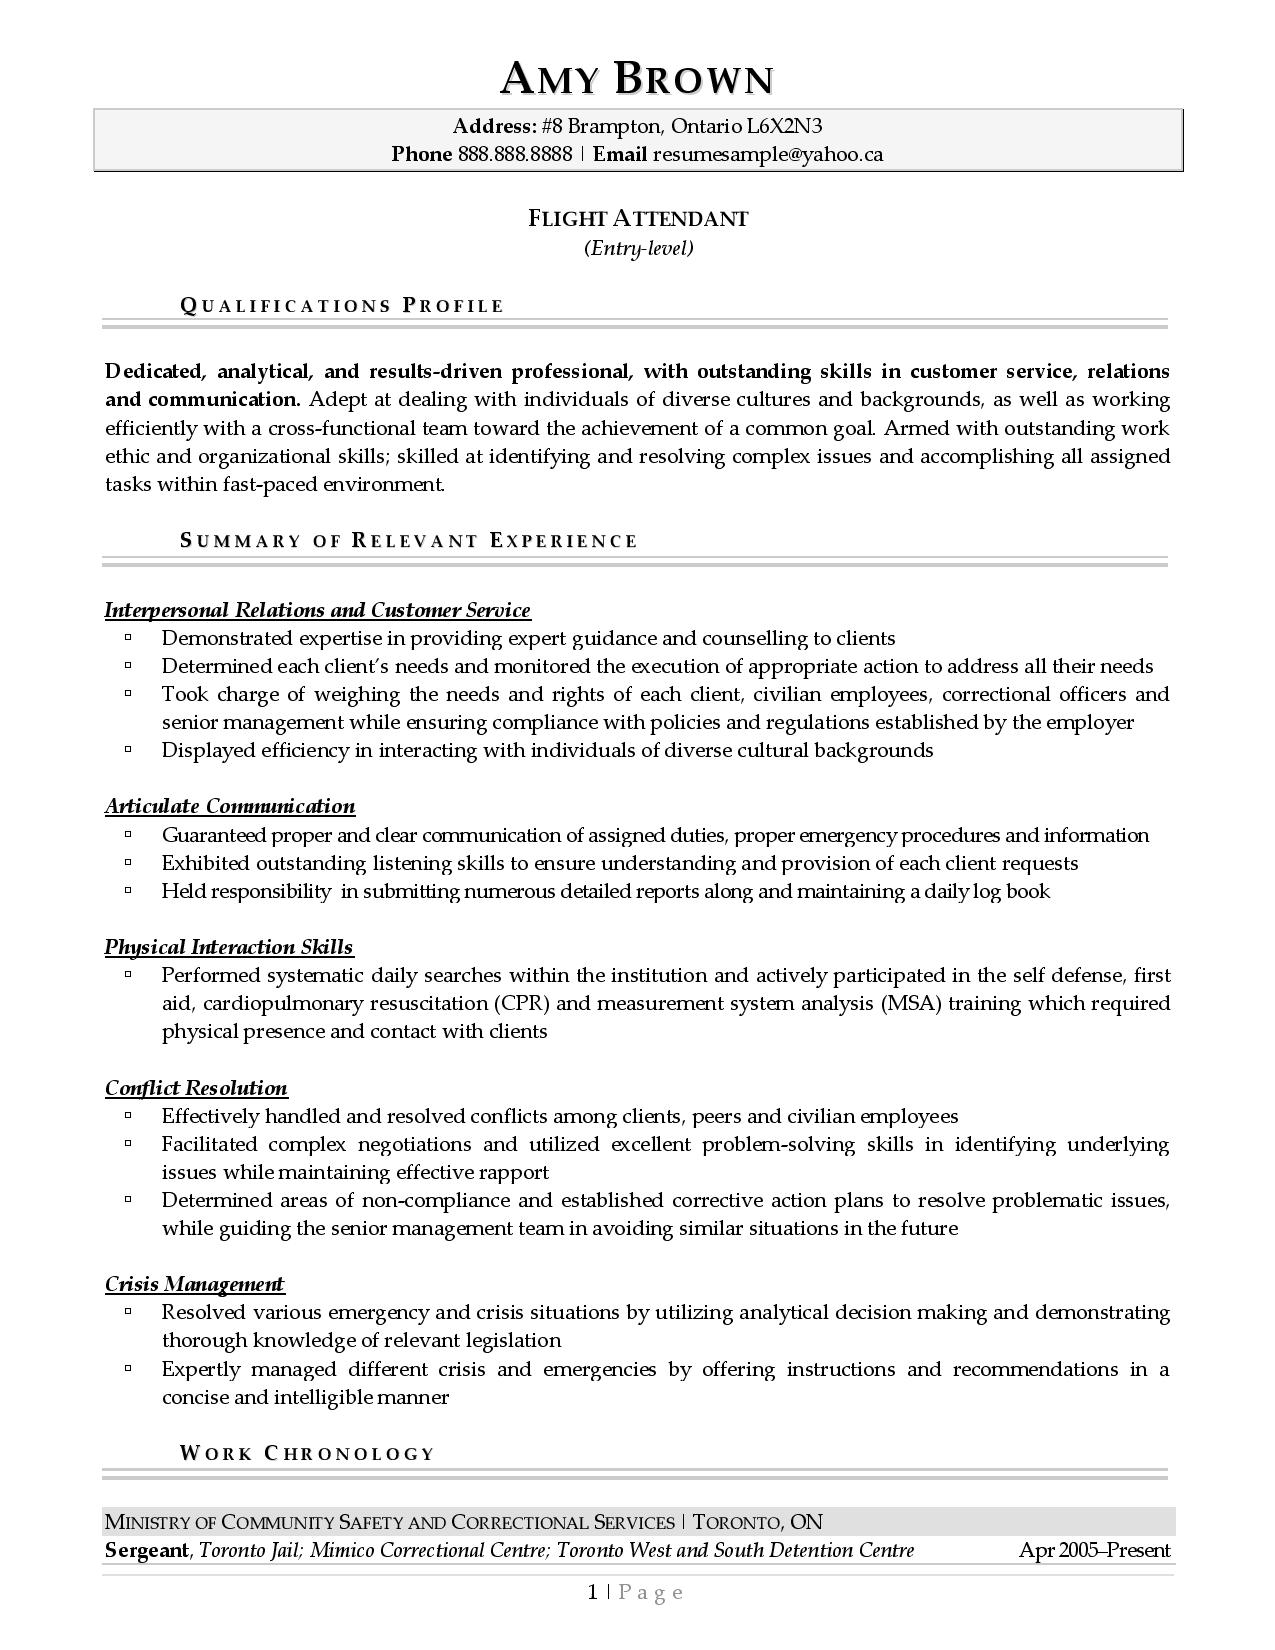 Page 1 of a sample from our flight attendant resume examples